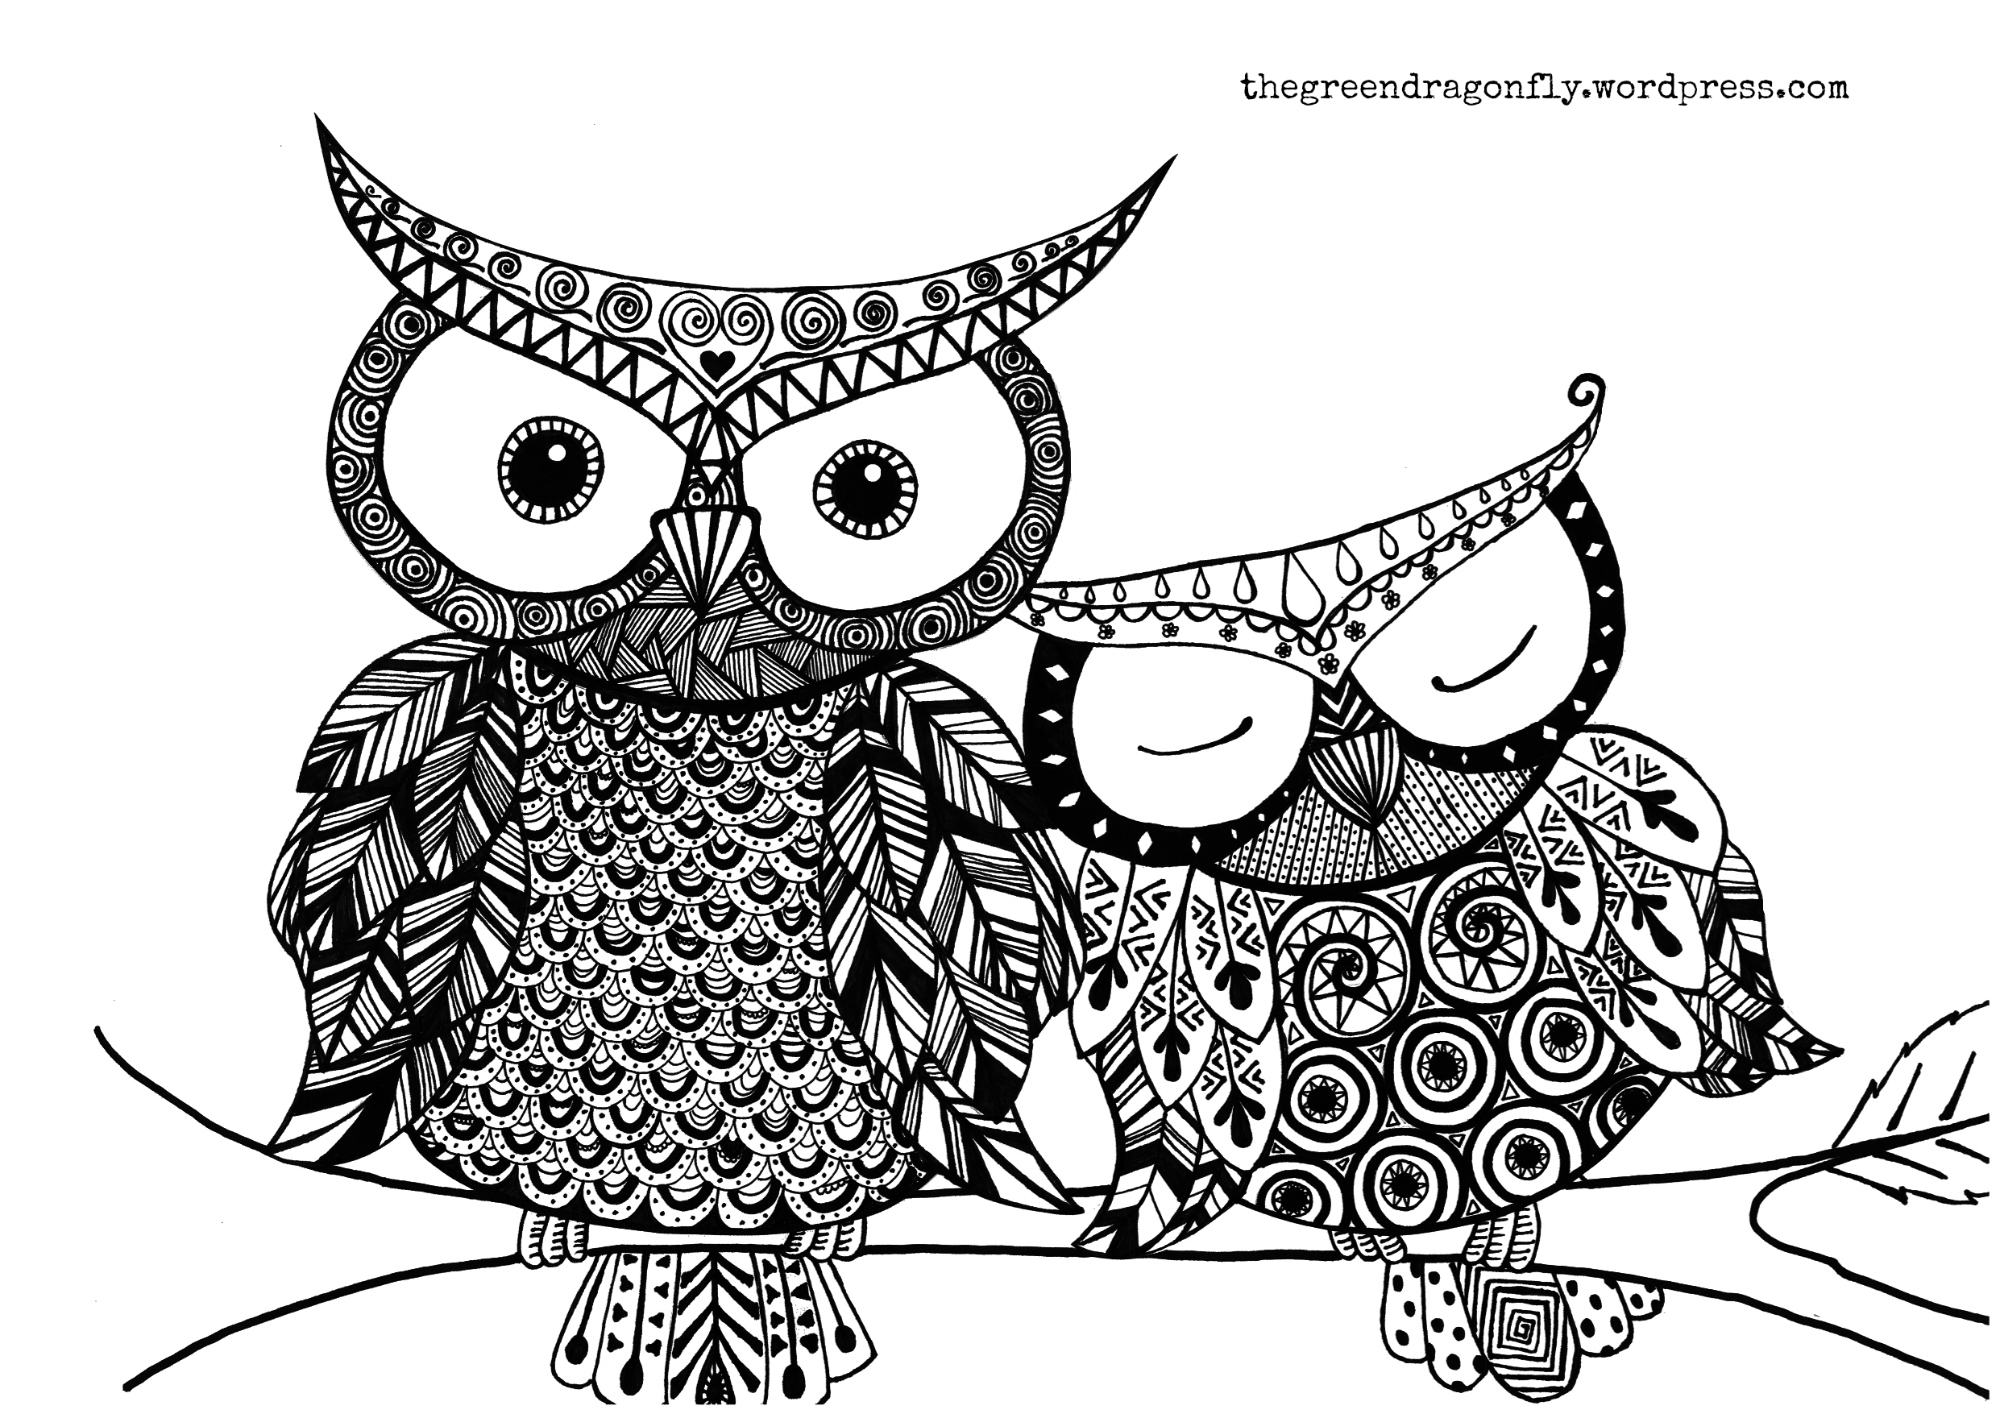 owl coloring page owl coloring pages all about owl owl coloring page